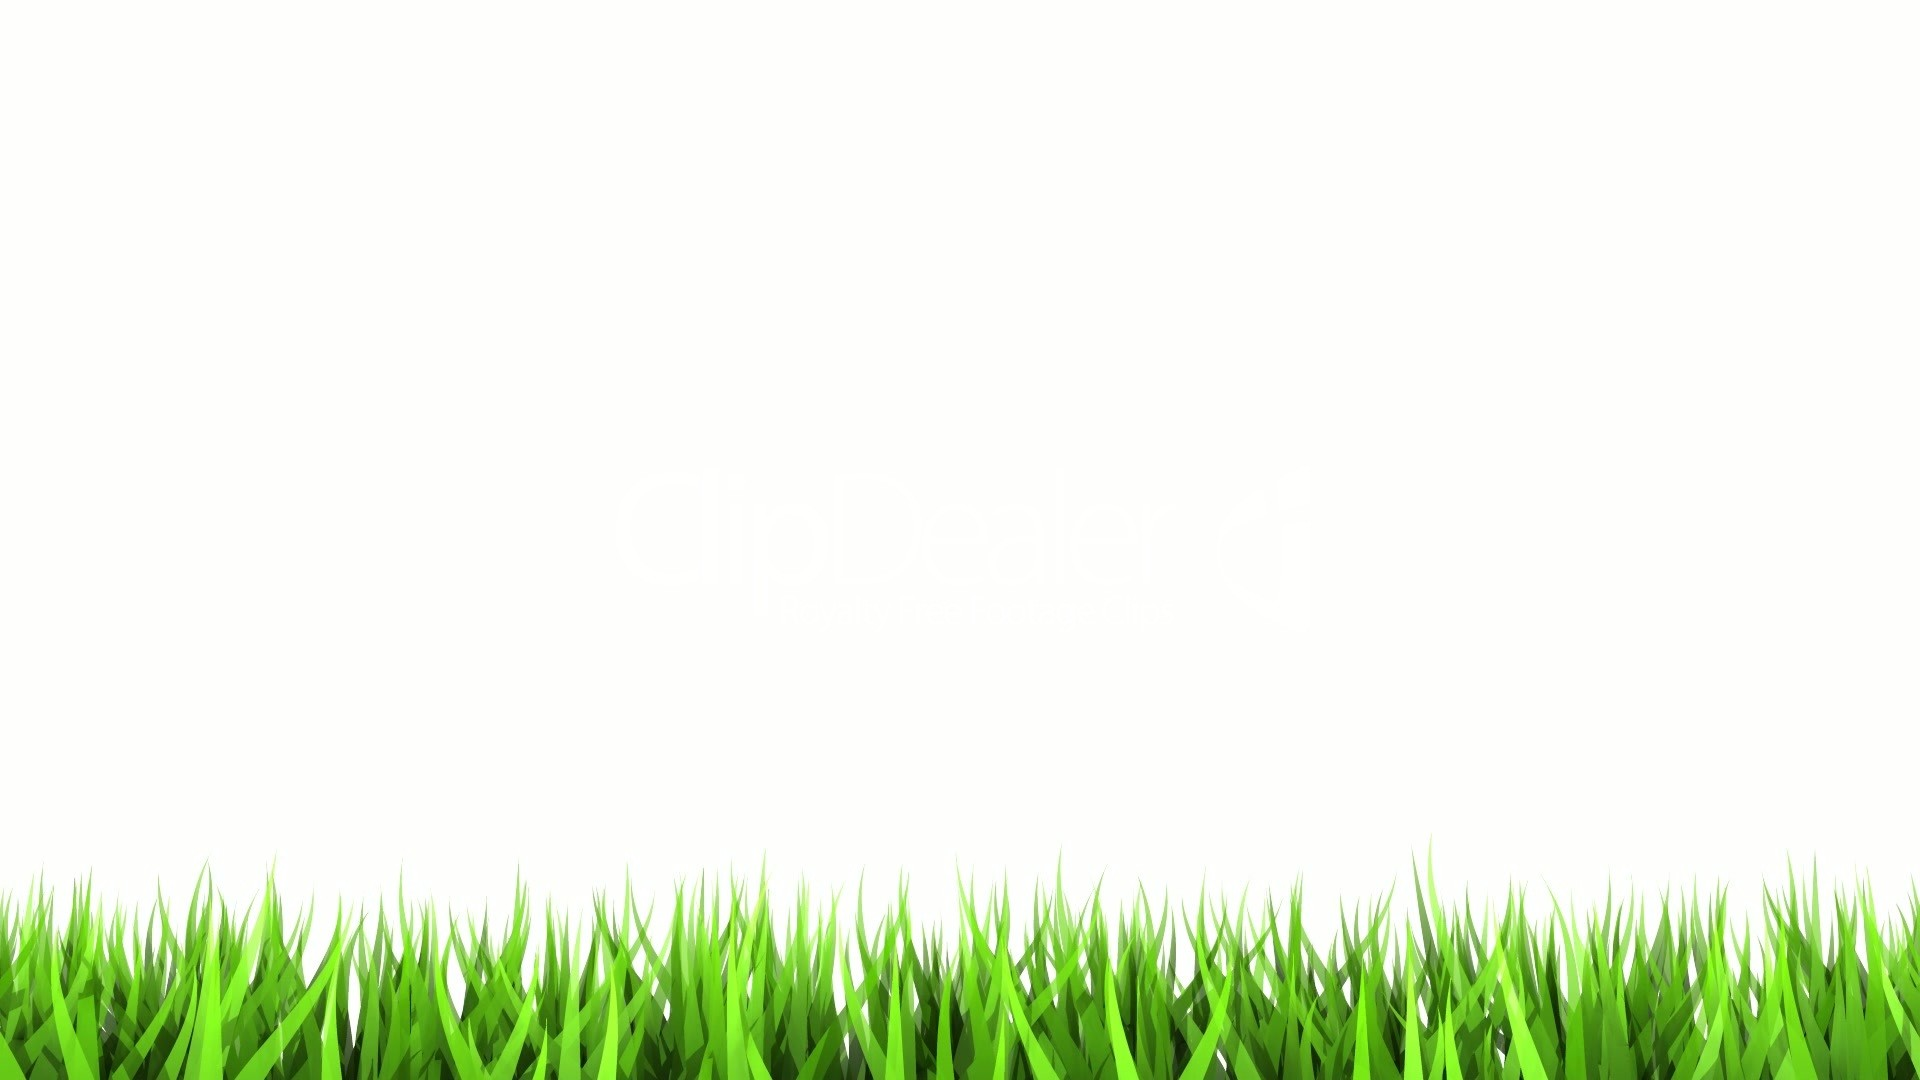 Green-And-White-Wallpaper-Background-3D